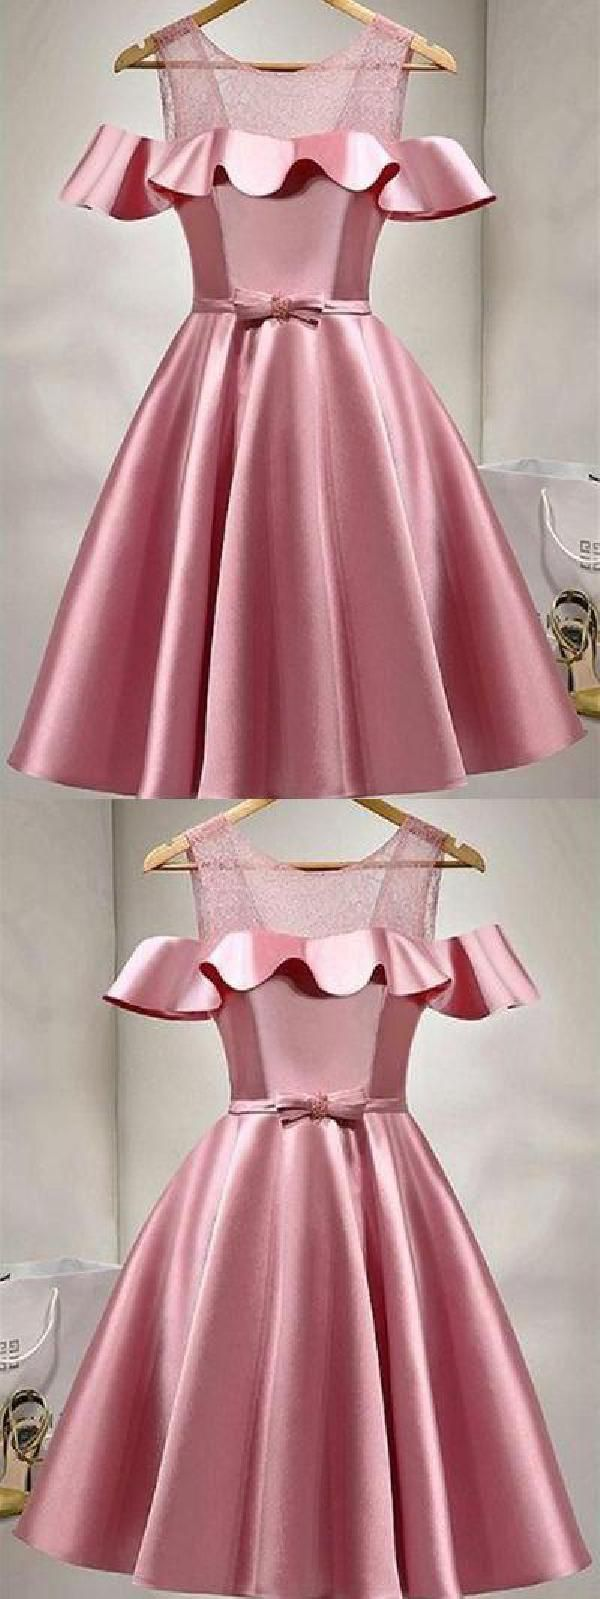 Homecoming dresses prom dresses pink prom dresses lace short